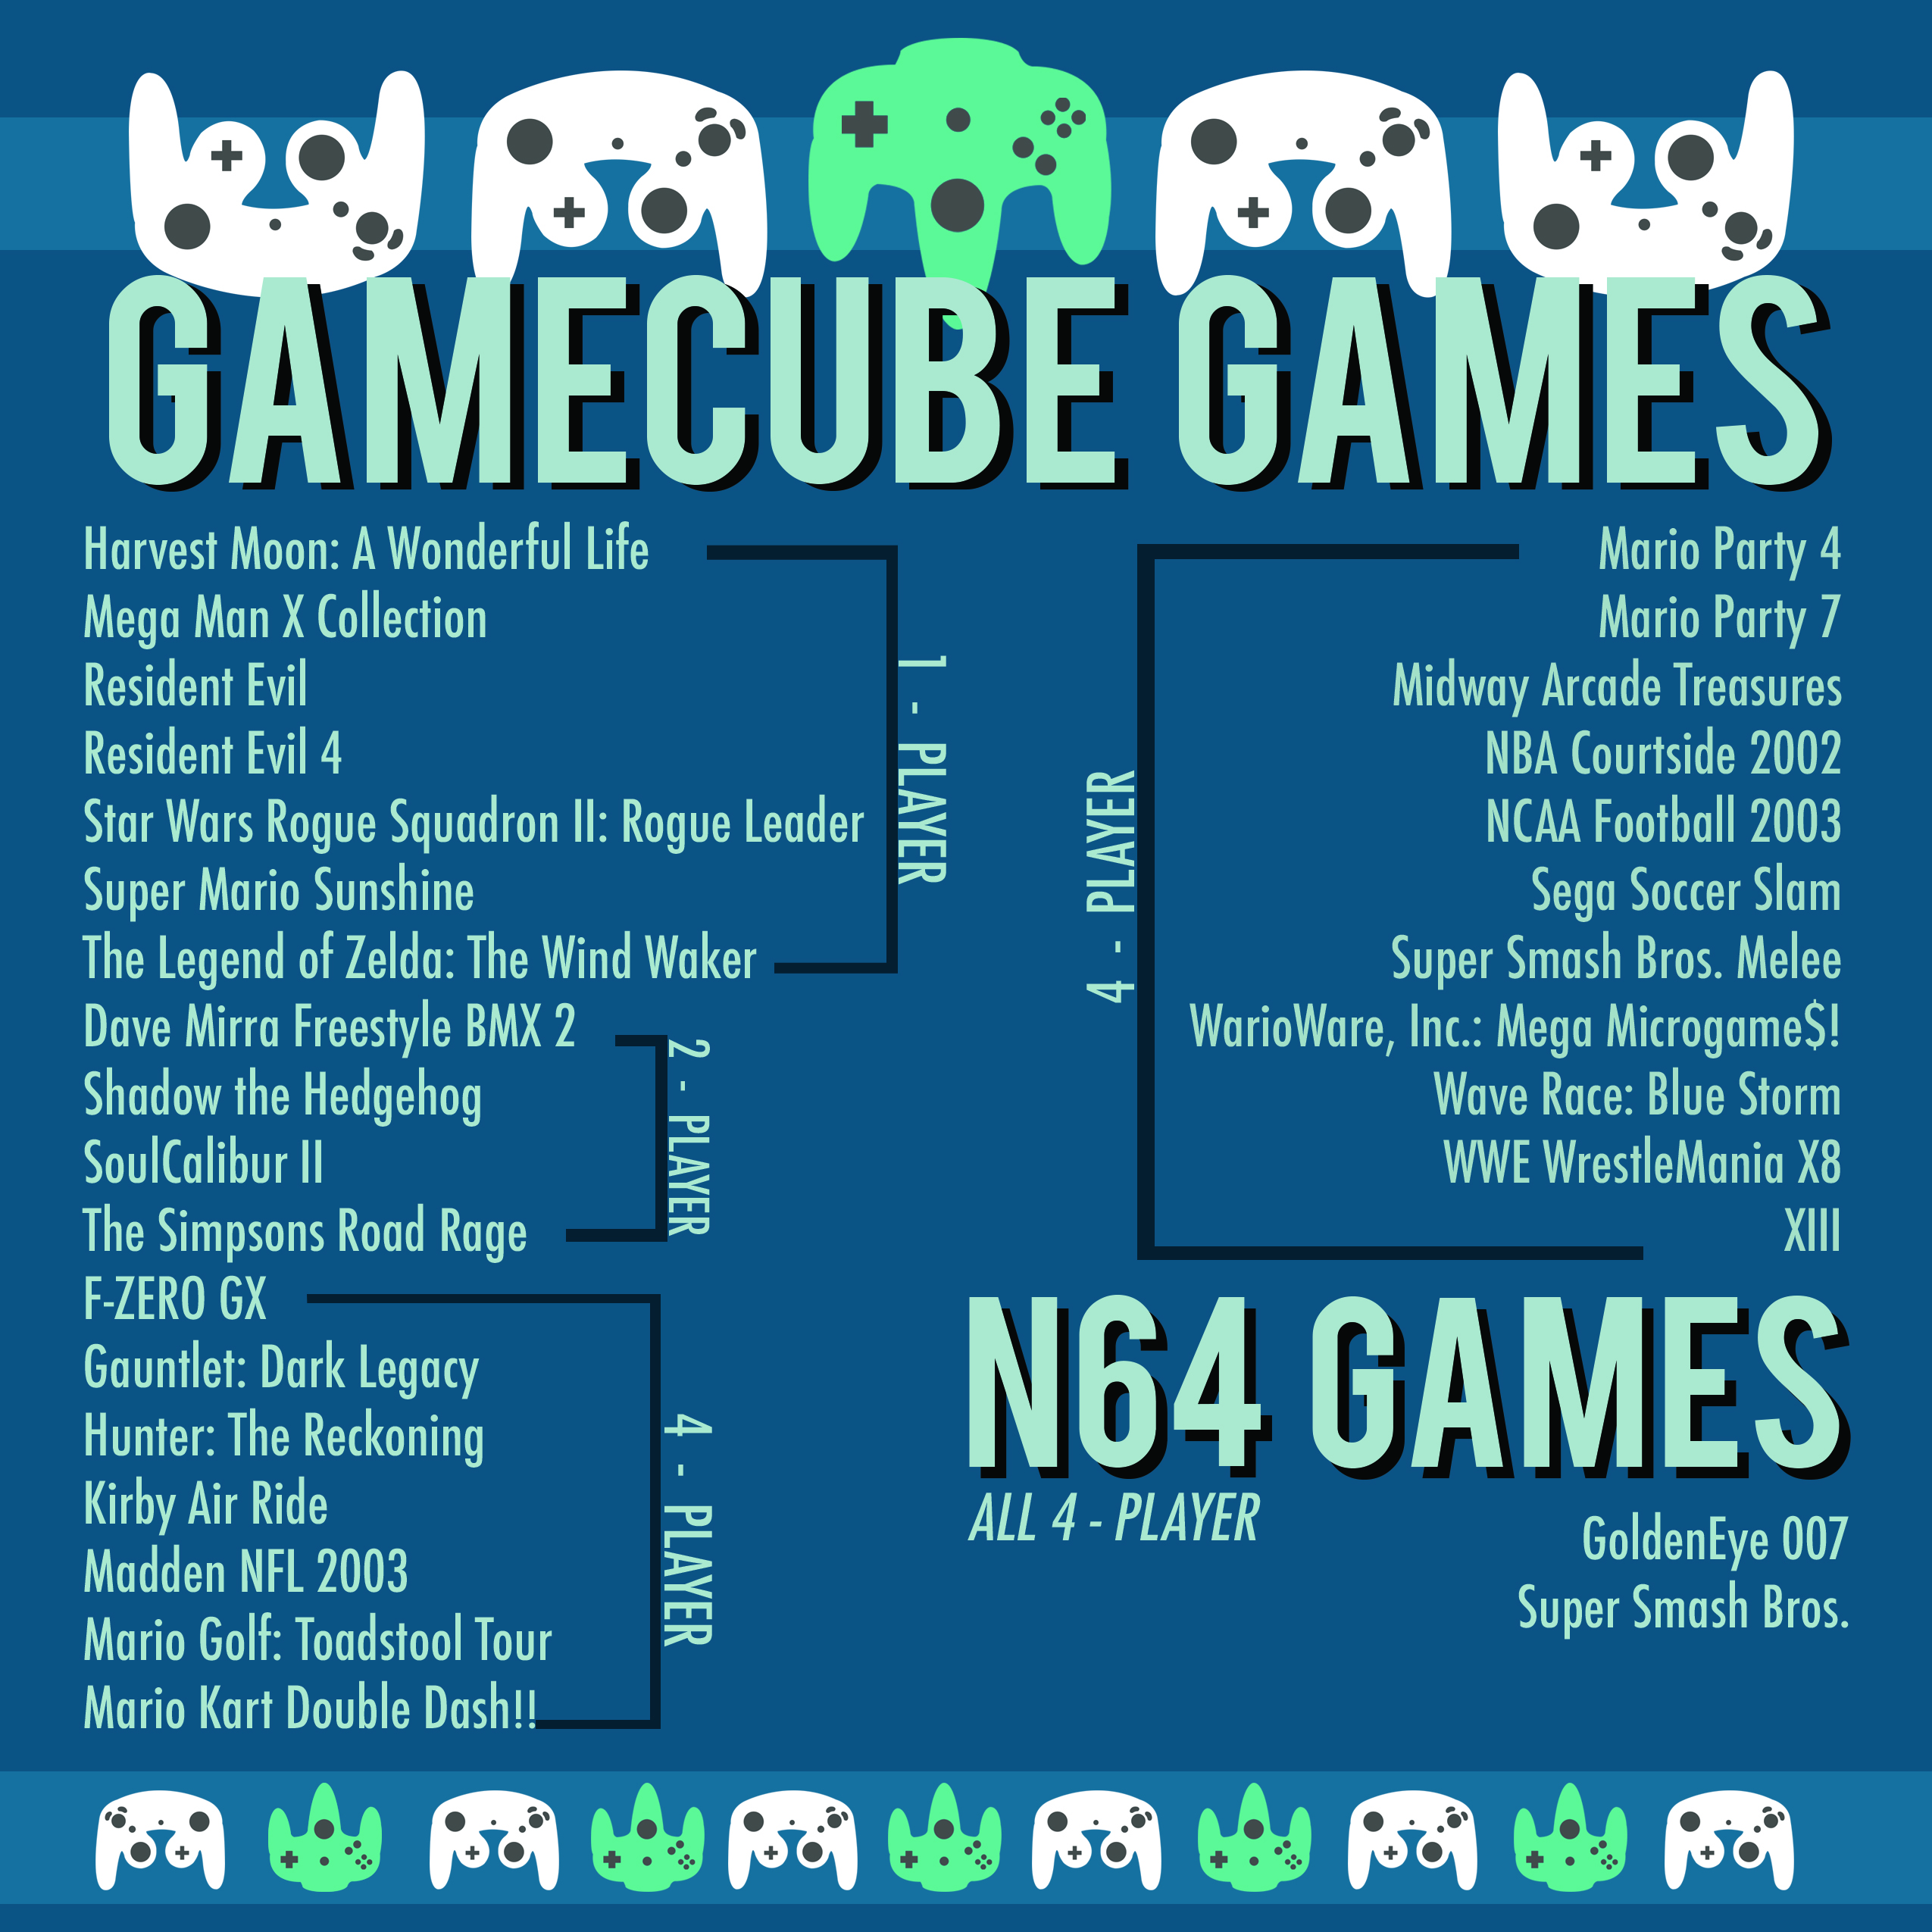 Gamecube Games at the ASLC